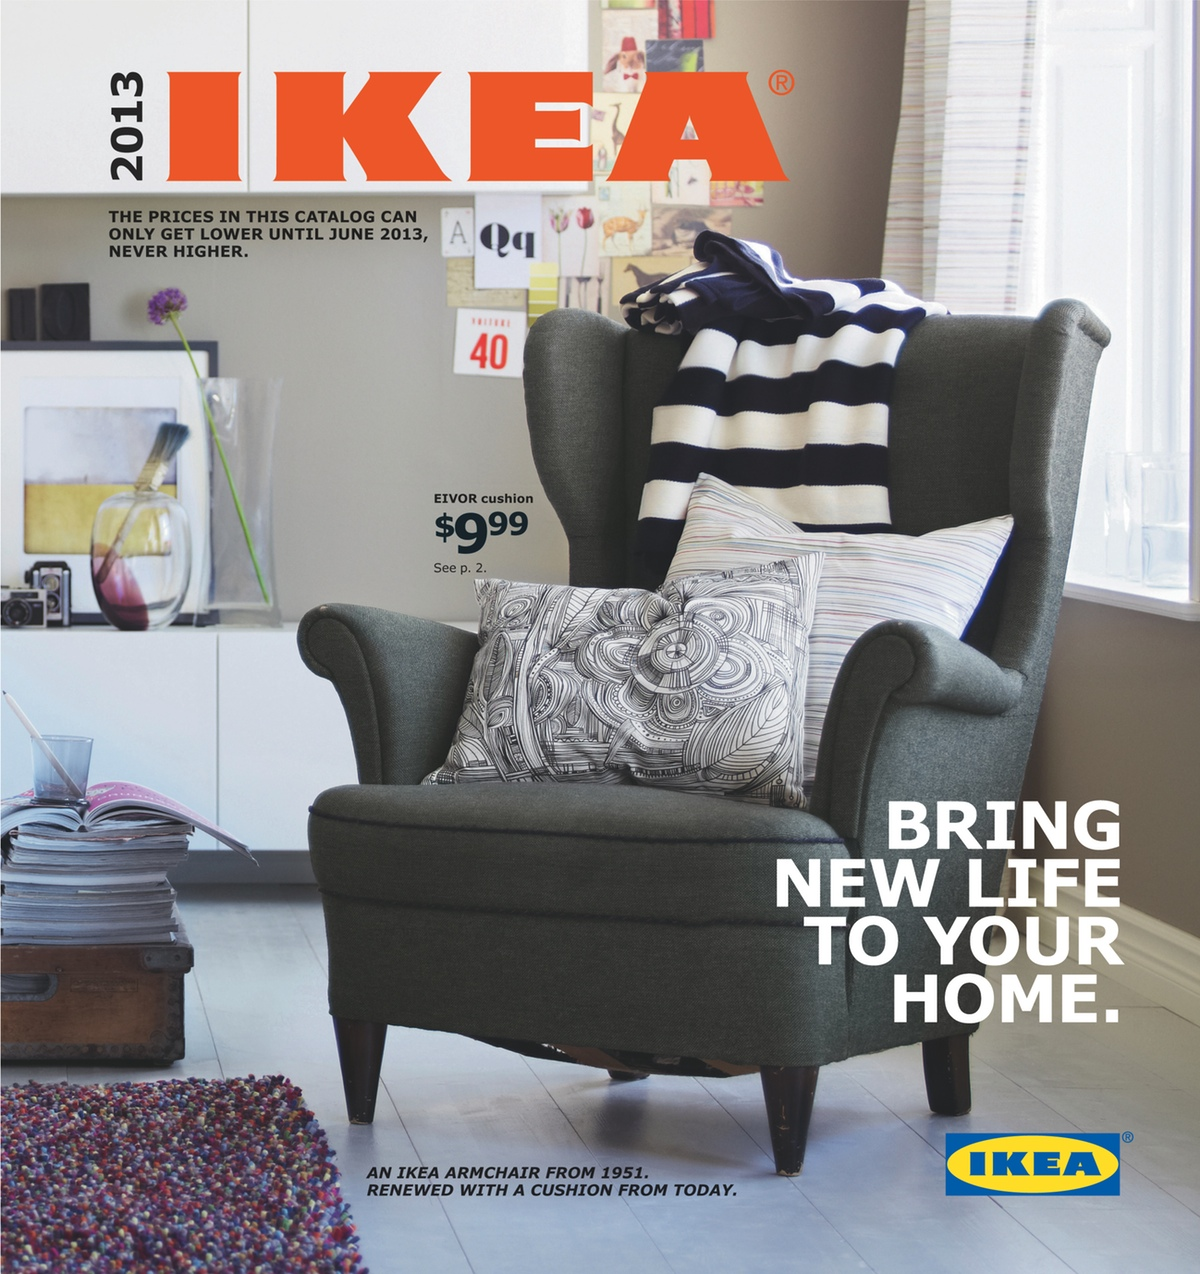 9808 to ikea or not to ikea Design house catalog